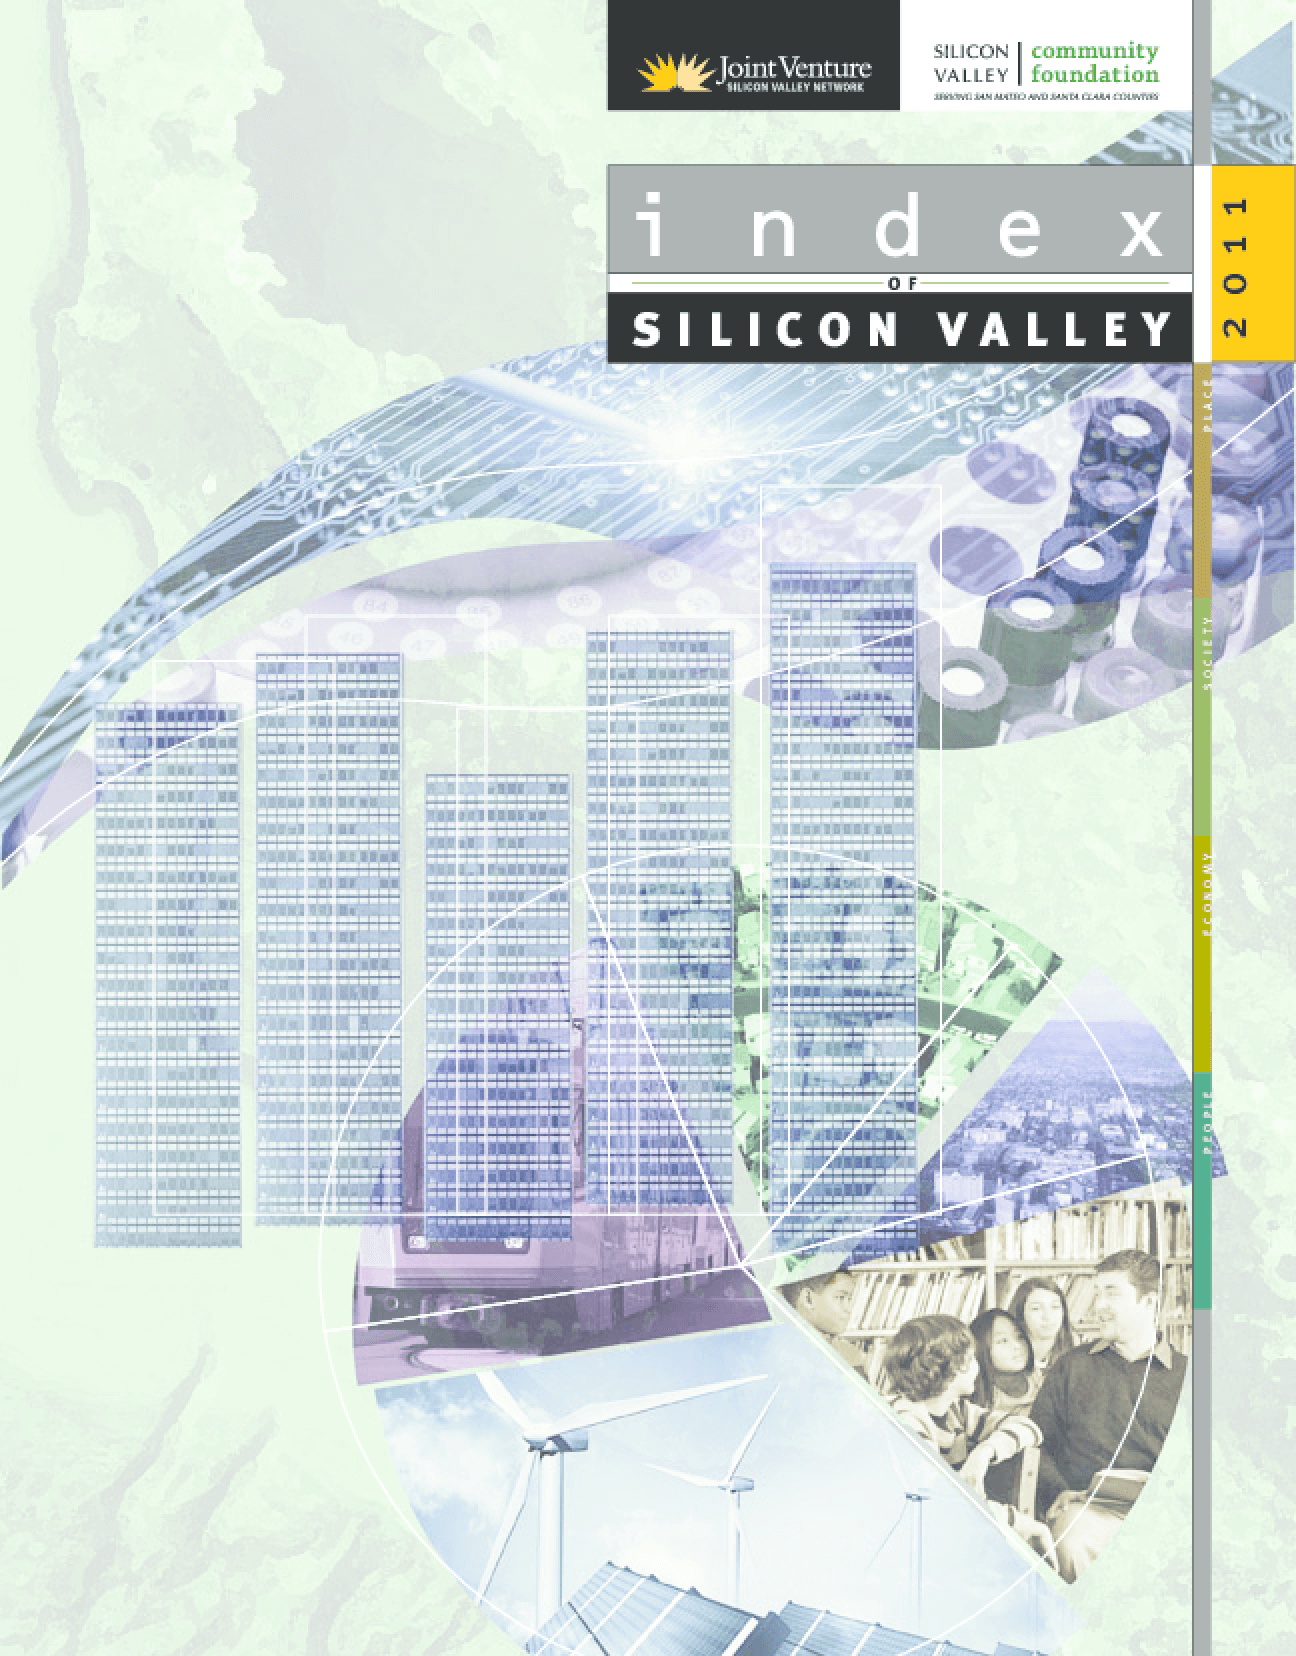 Index of Silicon Valley 2011